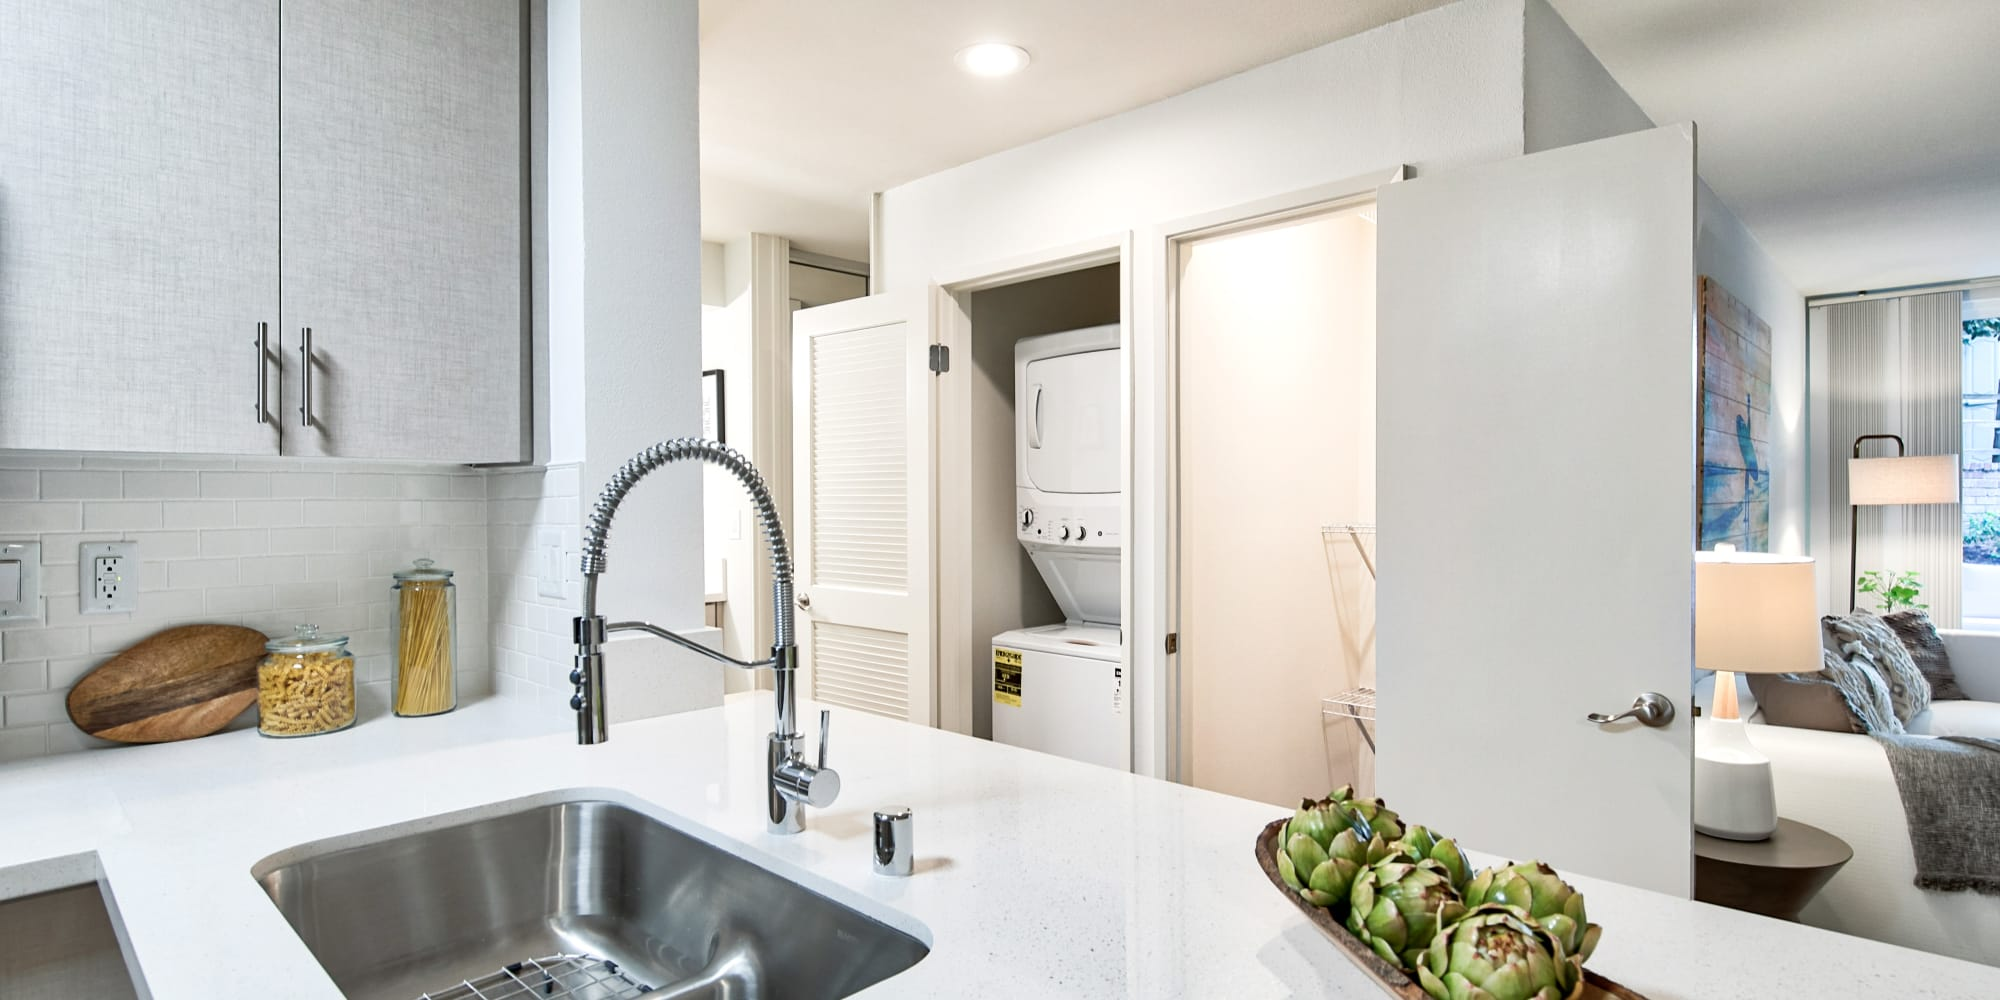 Kitchen with a large quartz countertop at The Meadows in Culver City, California